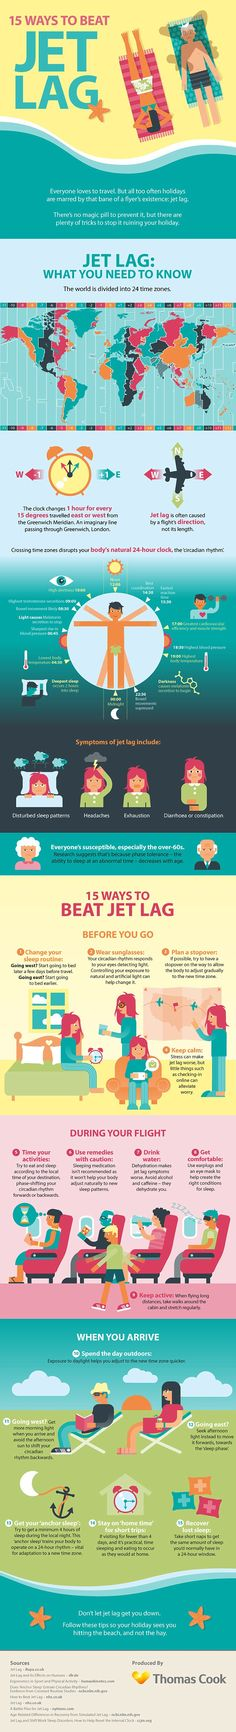 Jet lag can be a downer on an otherwise exciting vacation. We found a couple infographics that illustrate some of the best ways to beat jet lag. Take a look at these tips to help you fight through jet lag when you travel. Travel Info, Travel Bugs, Travel Advice, Air Travel, Travel Plane, Travel Chic, Travel Reviews, Rome Travel, Travel Europe